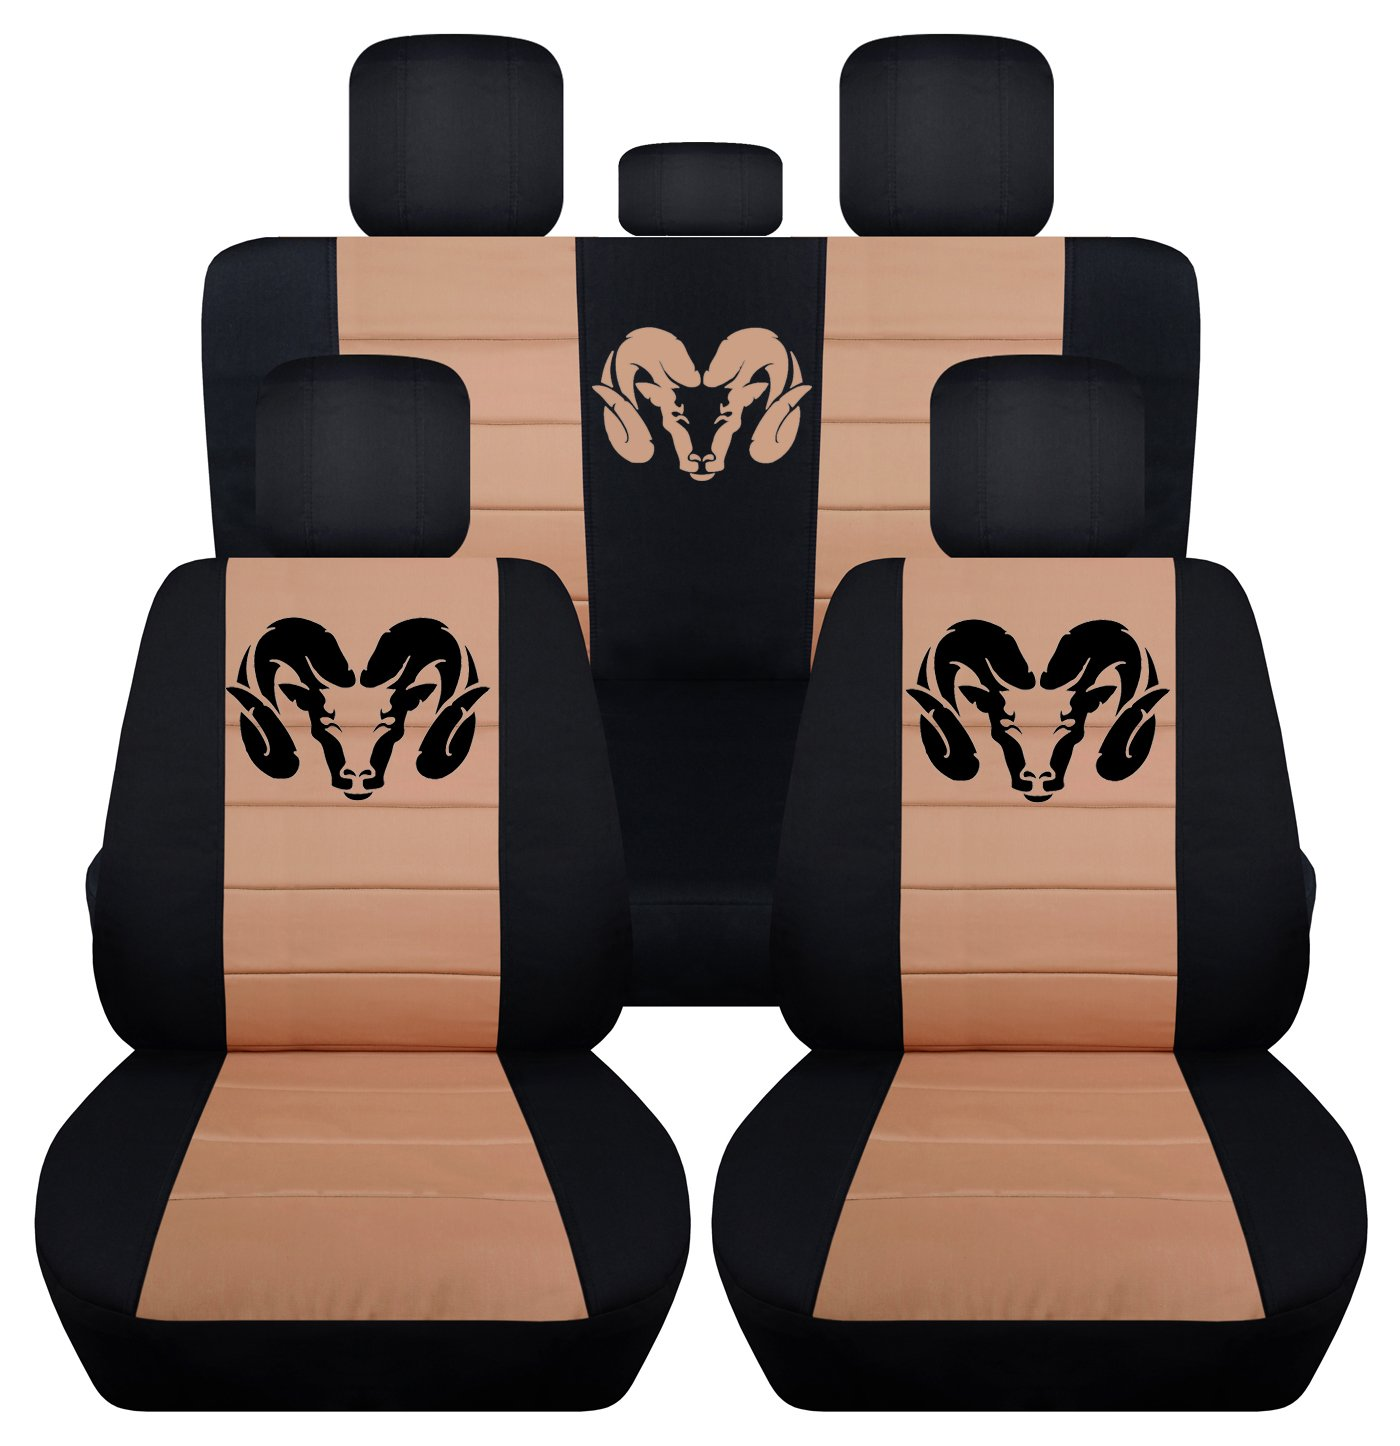 40-60 Rear with Armest, Black Sand Fits 2012 to 2018 Dodge Ram Front and Rear Ram Seat Covers 22 Color Options